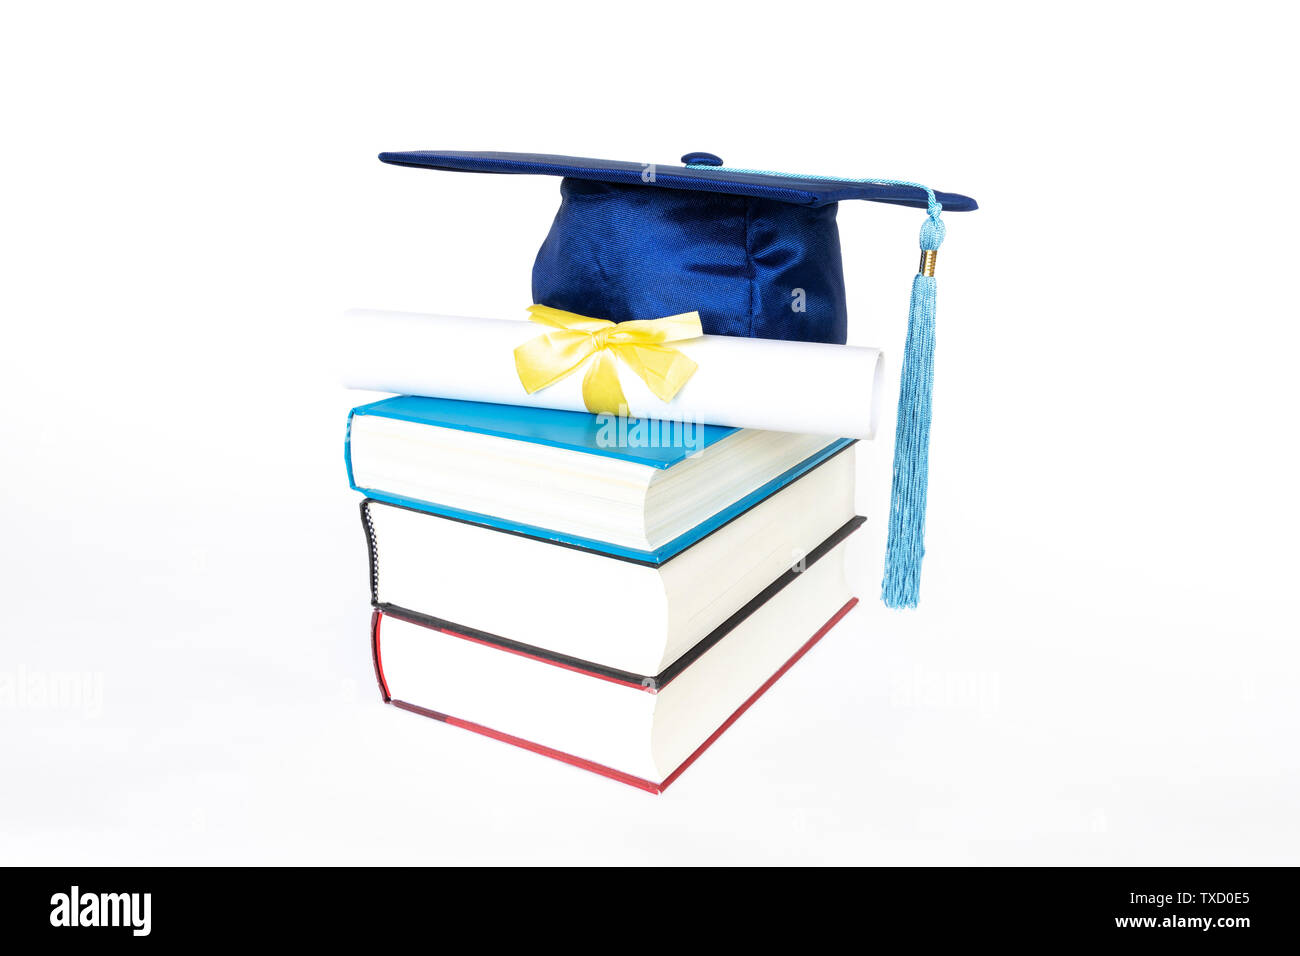 Blue graduation cap with diploma on top of books isolated on white background. Education concept. - Stock Image